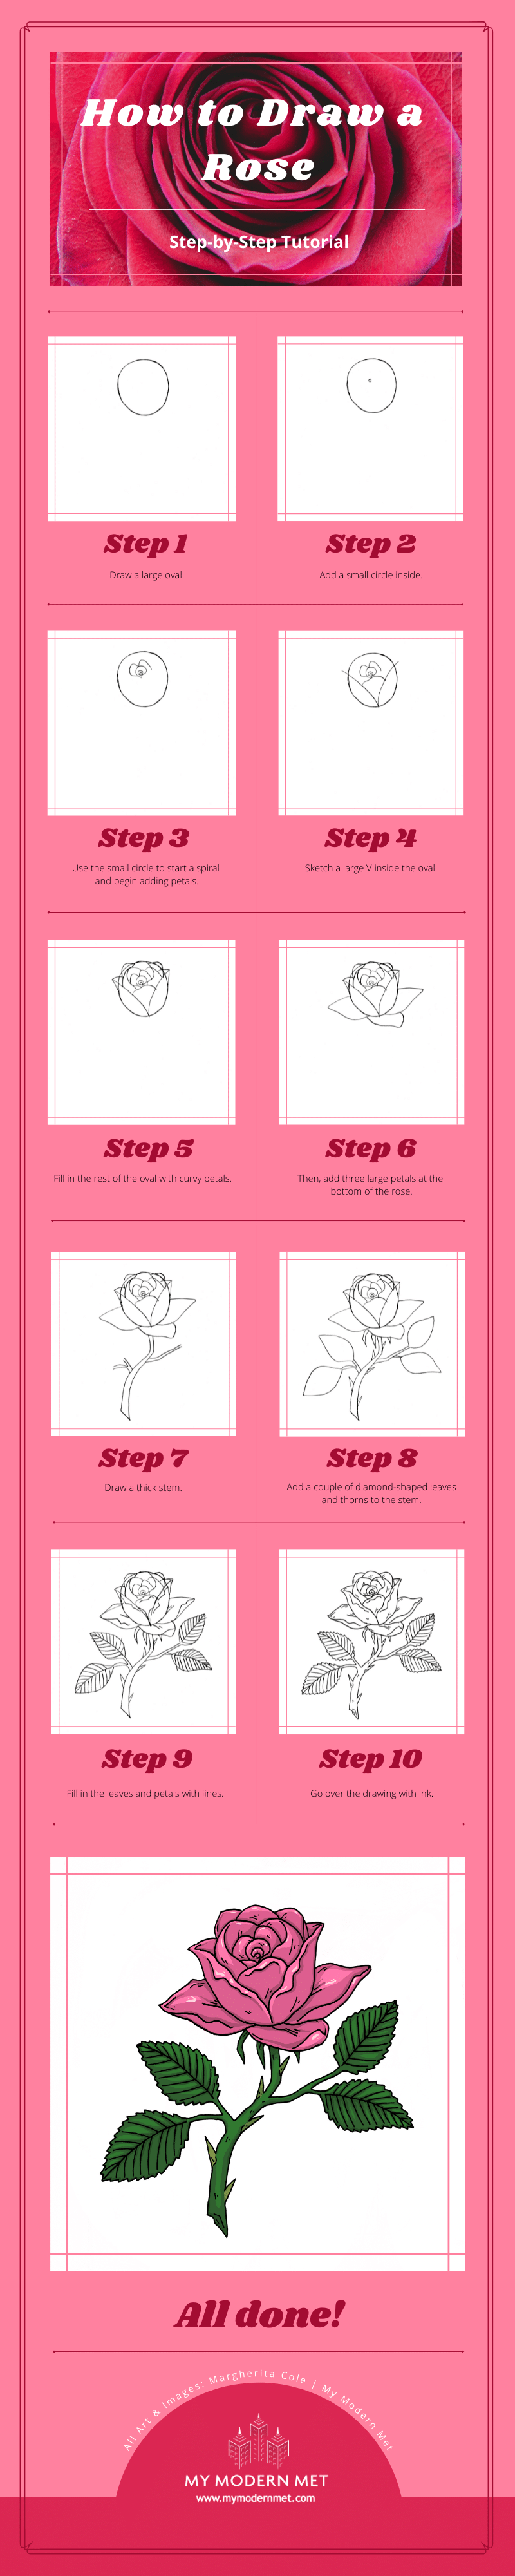 How to Draw a Rose Infographic